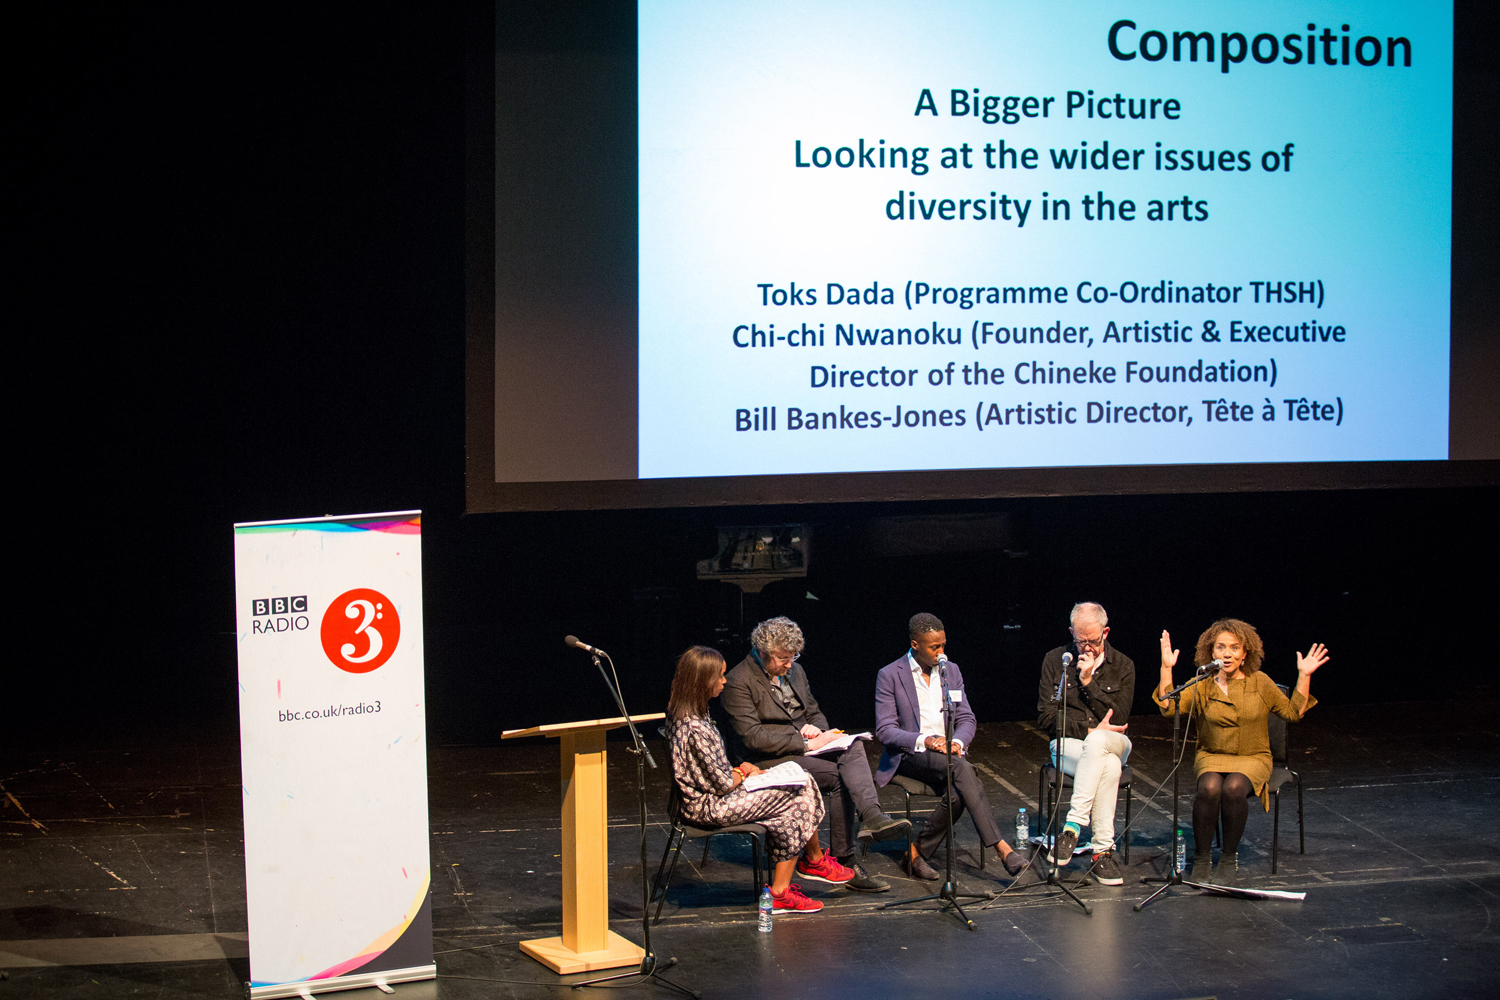 One of the panels during BBC Radio 3's Diversity and Inclusion in Composition Conference. Pictured from left to right are Josie d'Arby, Tom Service, Toks Dada (Programme Co-Ordinator, THSH), Bill Bankes-Jones (Artistic Director, Tête à Tête), Chi-chi Nwanoku (Founder, Artistic & Executive Director of the Chineke Foundation). Photograph © by Guy Levy, courtesy BBC.